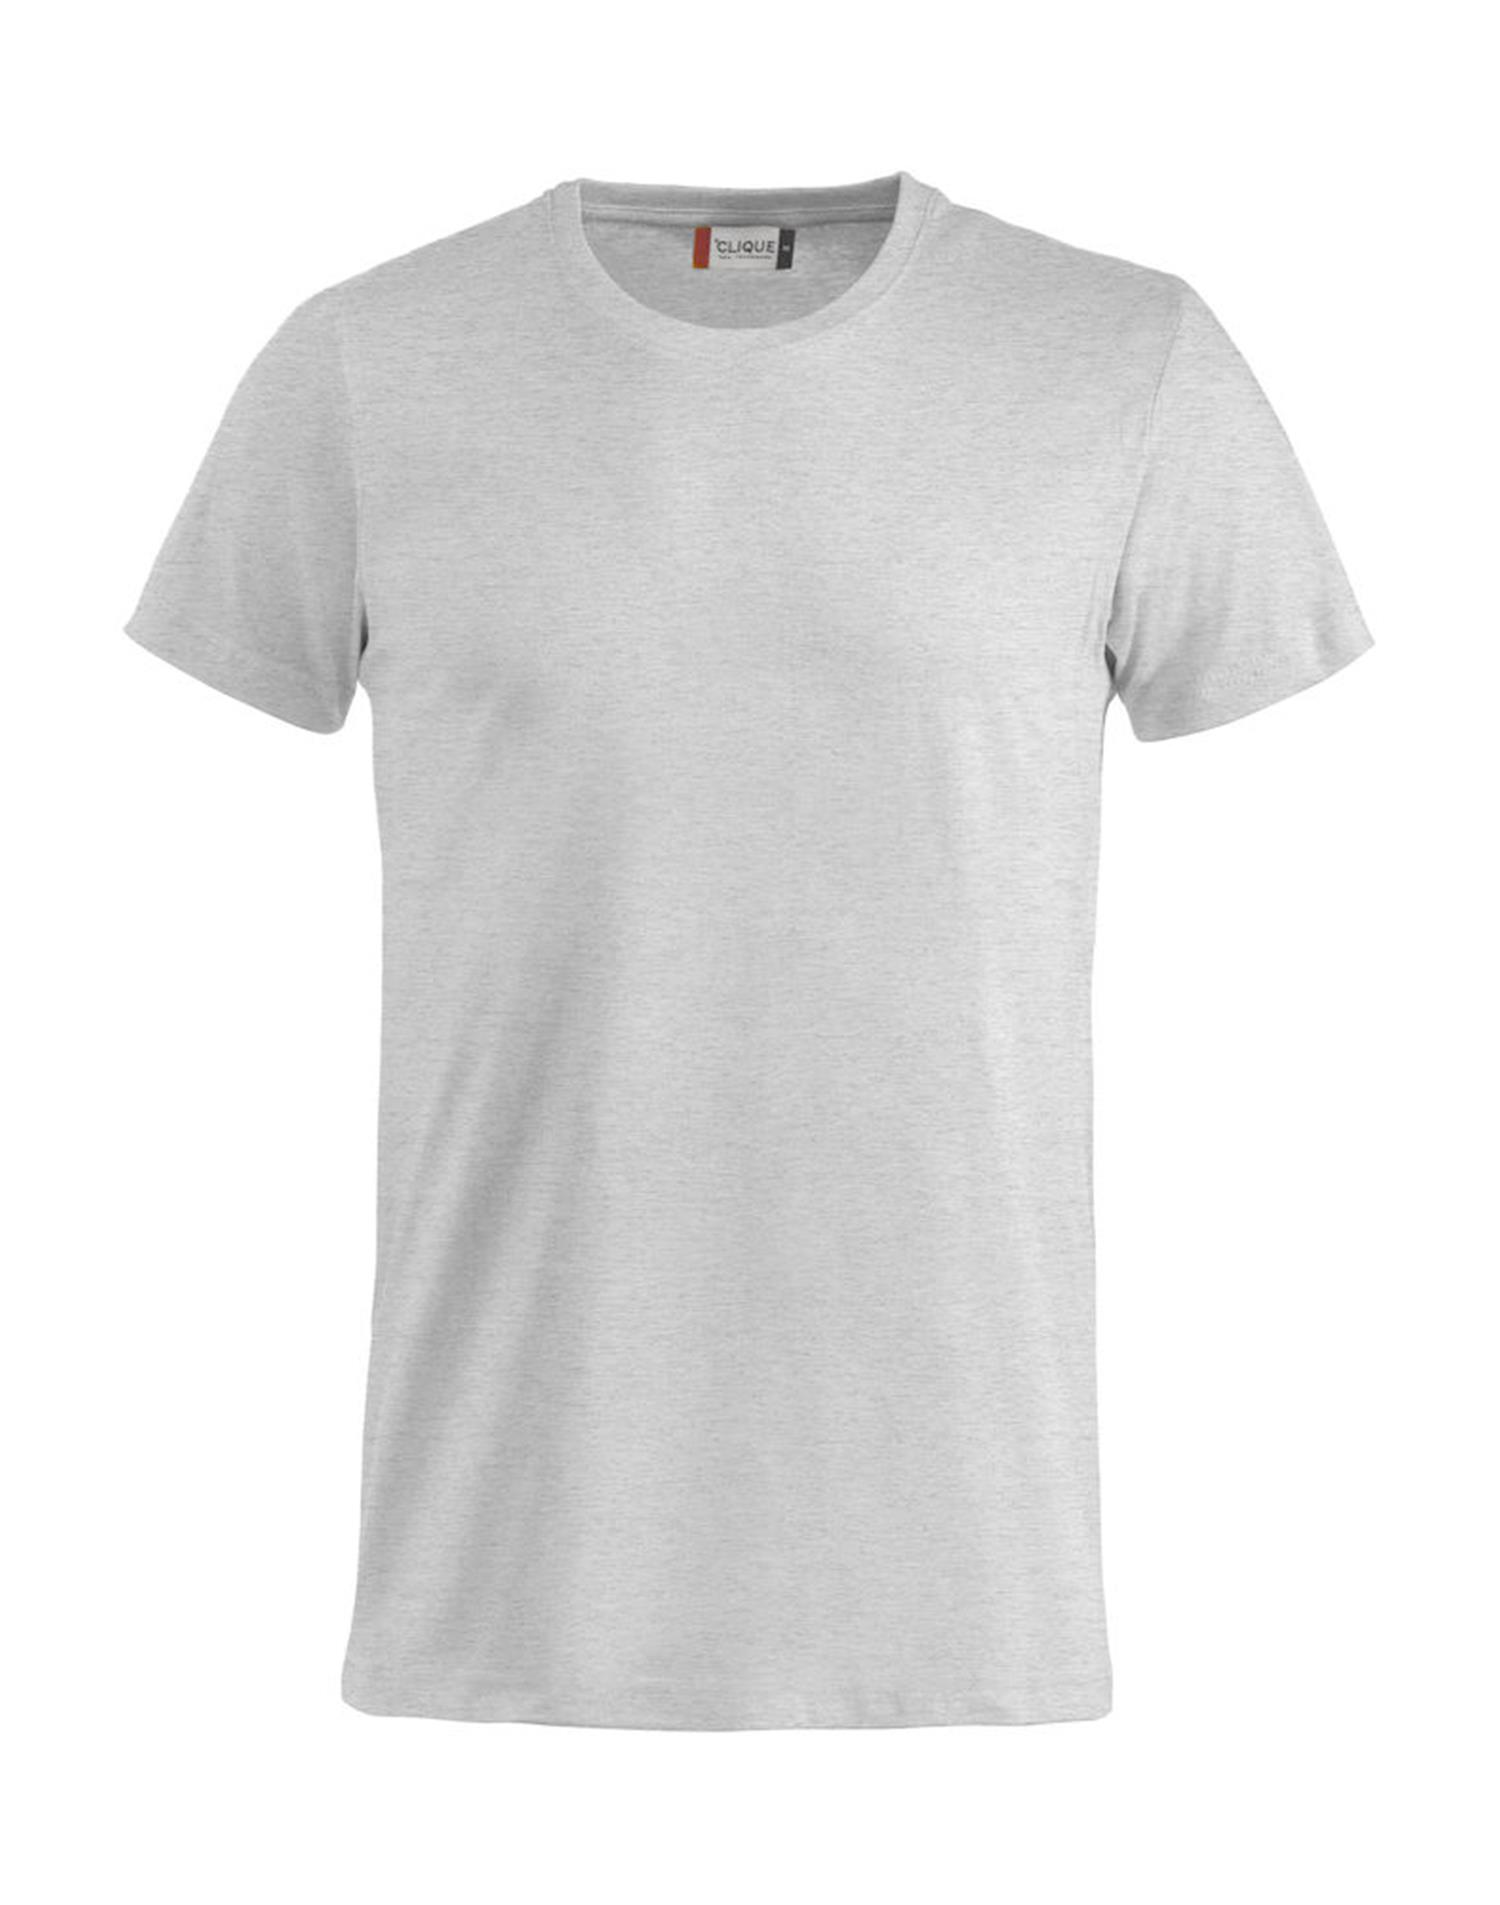 NewWave T-shirt Basic-T Clique (XS - GRIGIO)